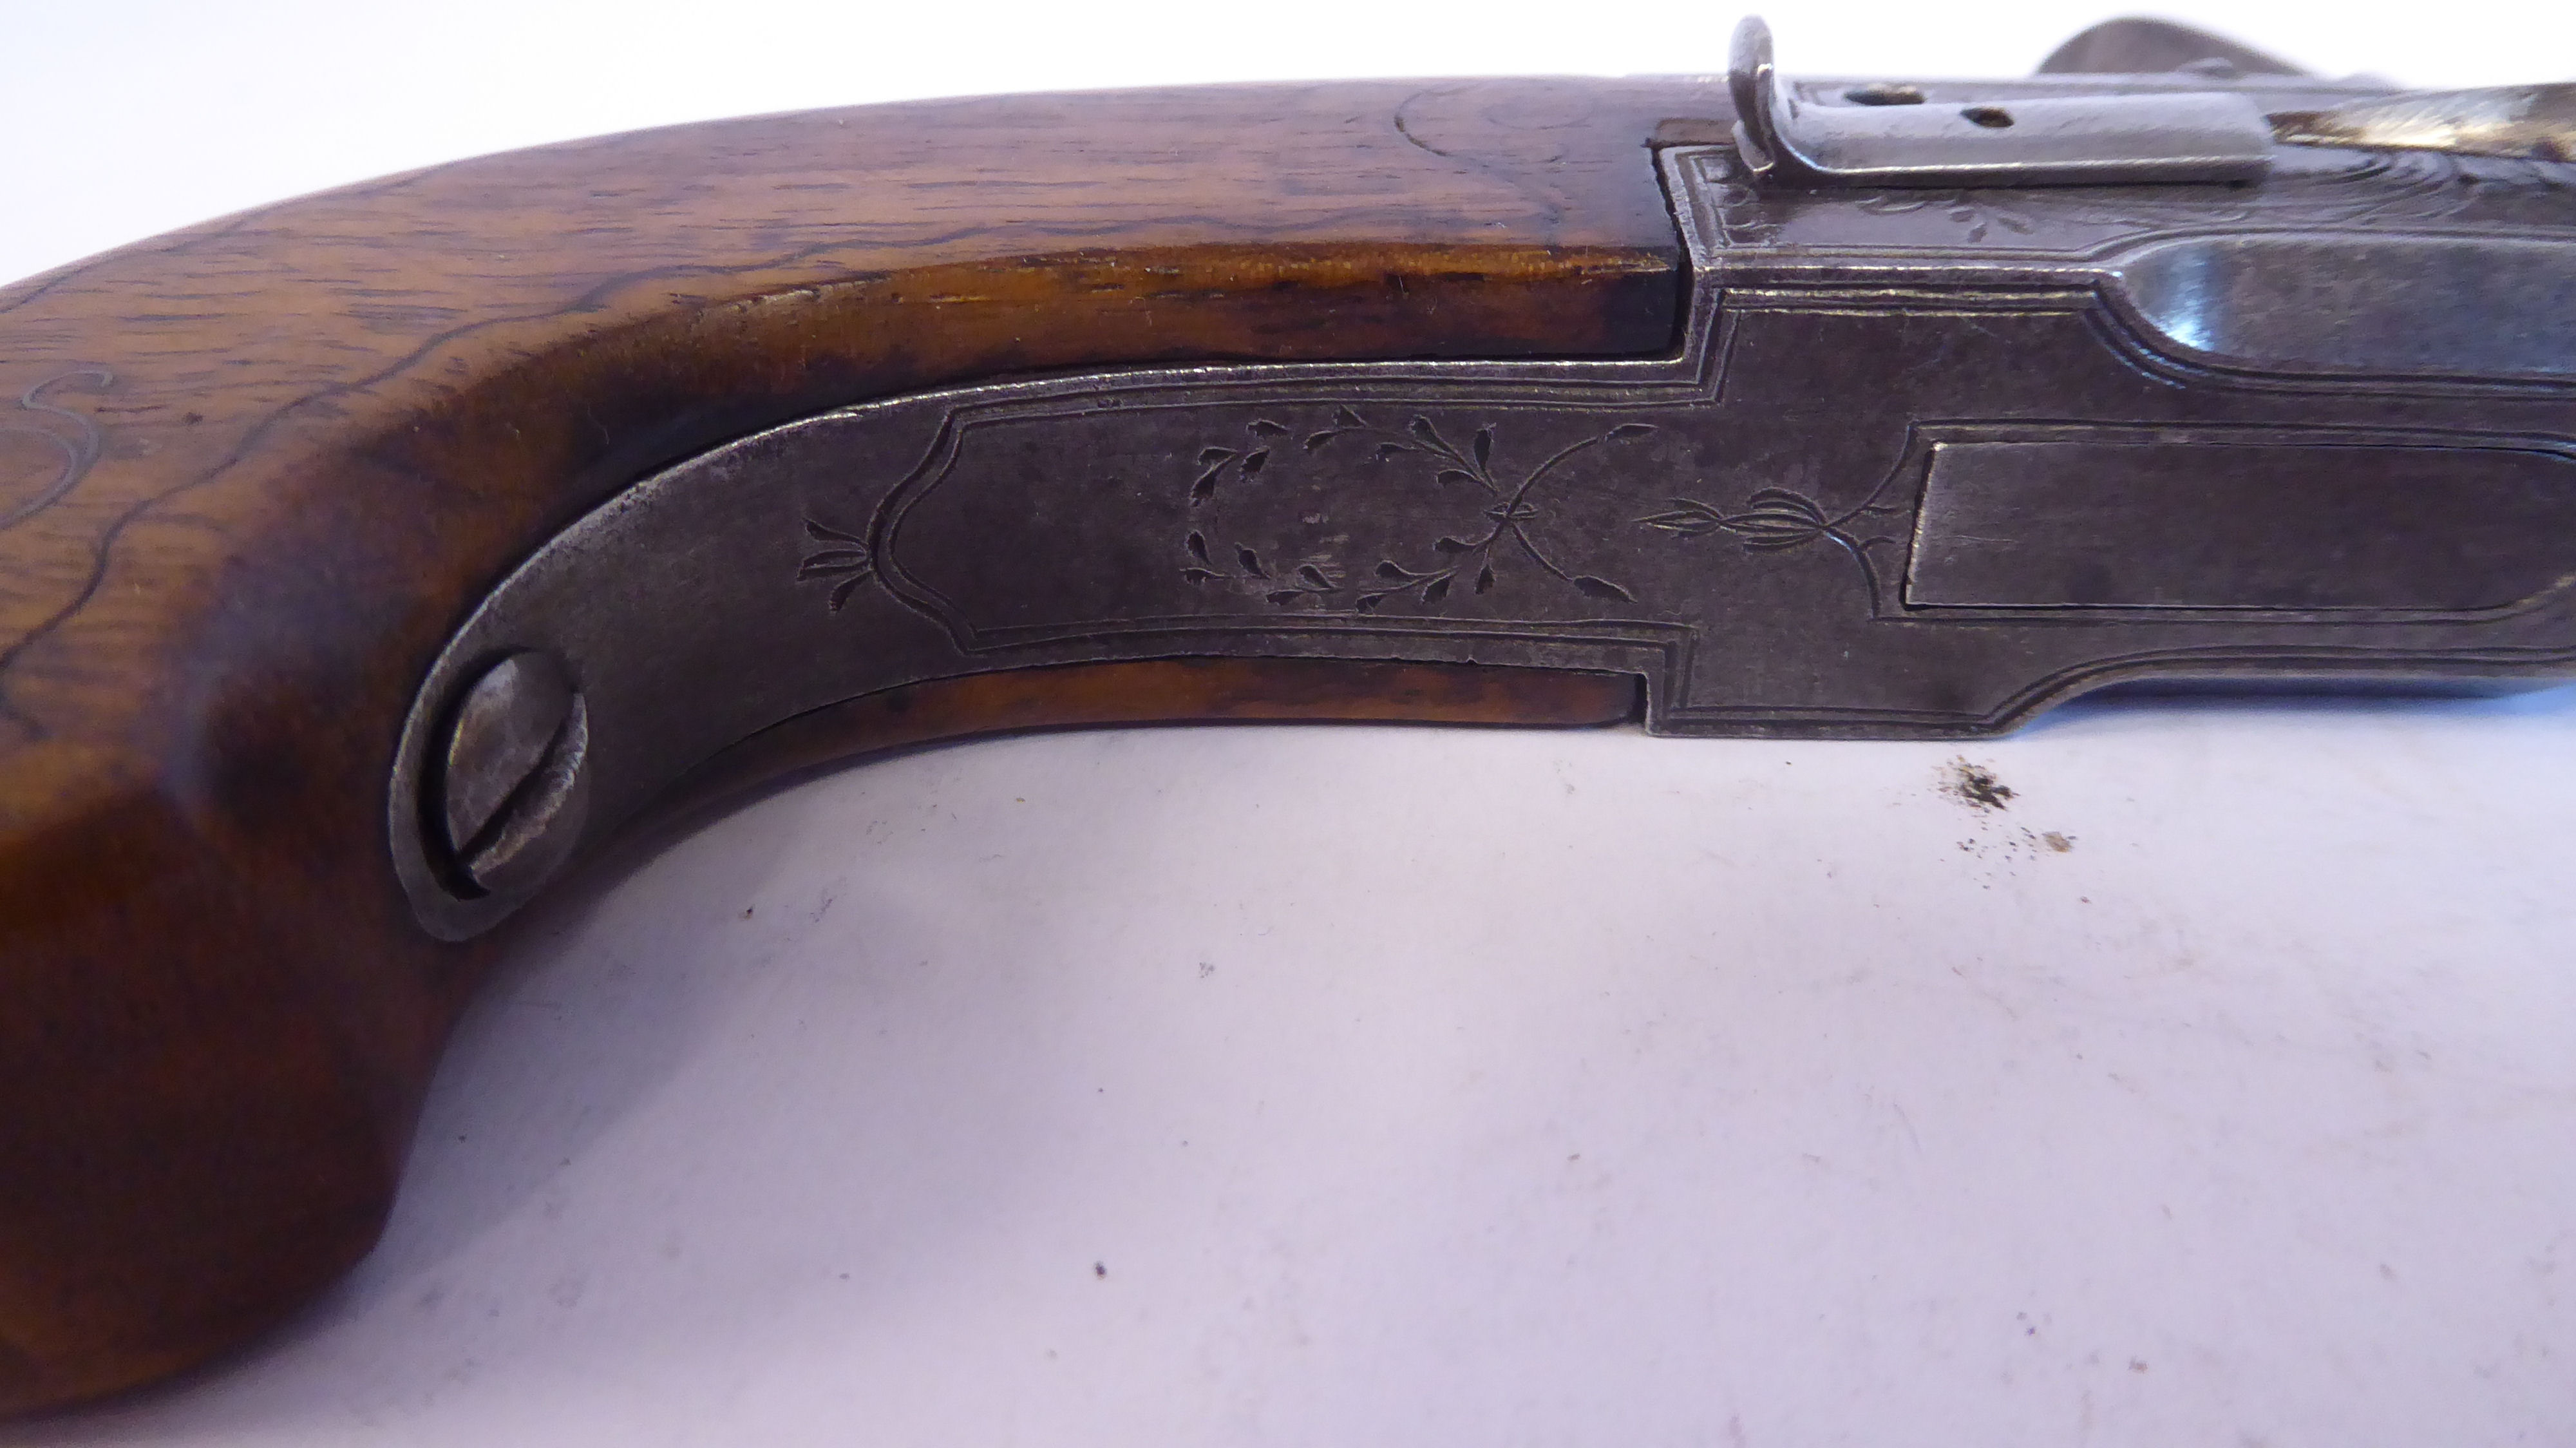 A 19thC Continental flintlock pistol with a folding trigger, inlaid wire ornament on the walnut - Image 6 of 9